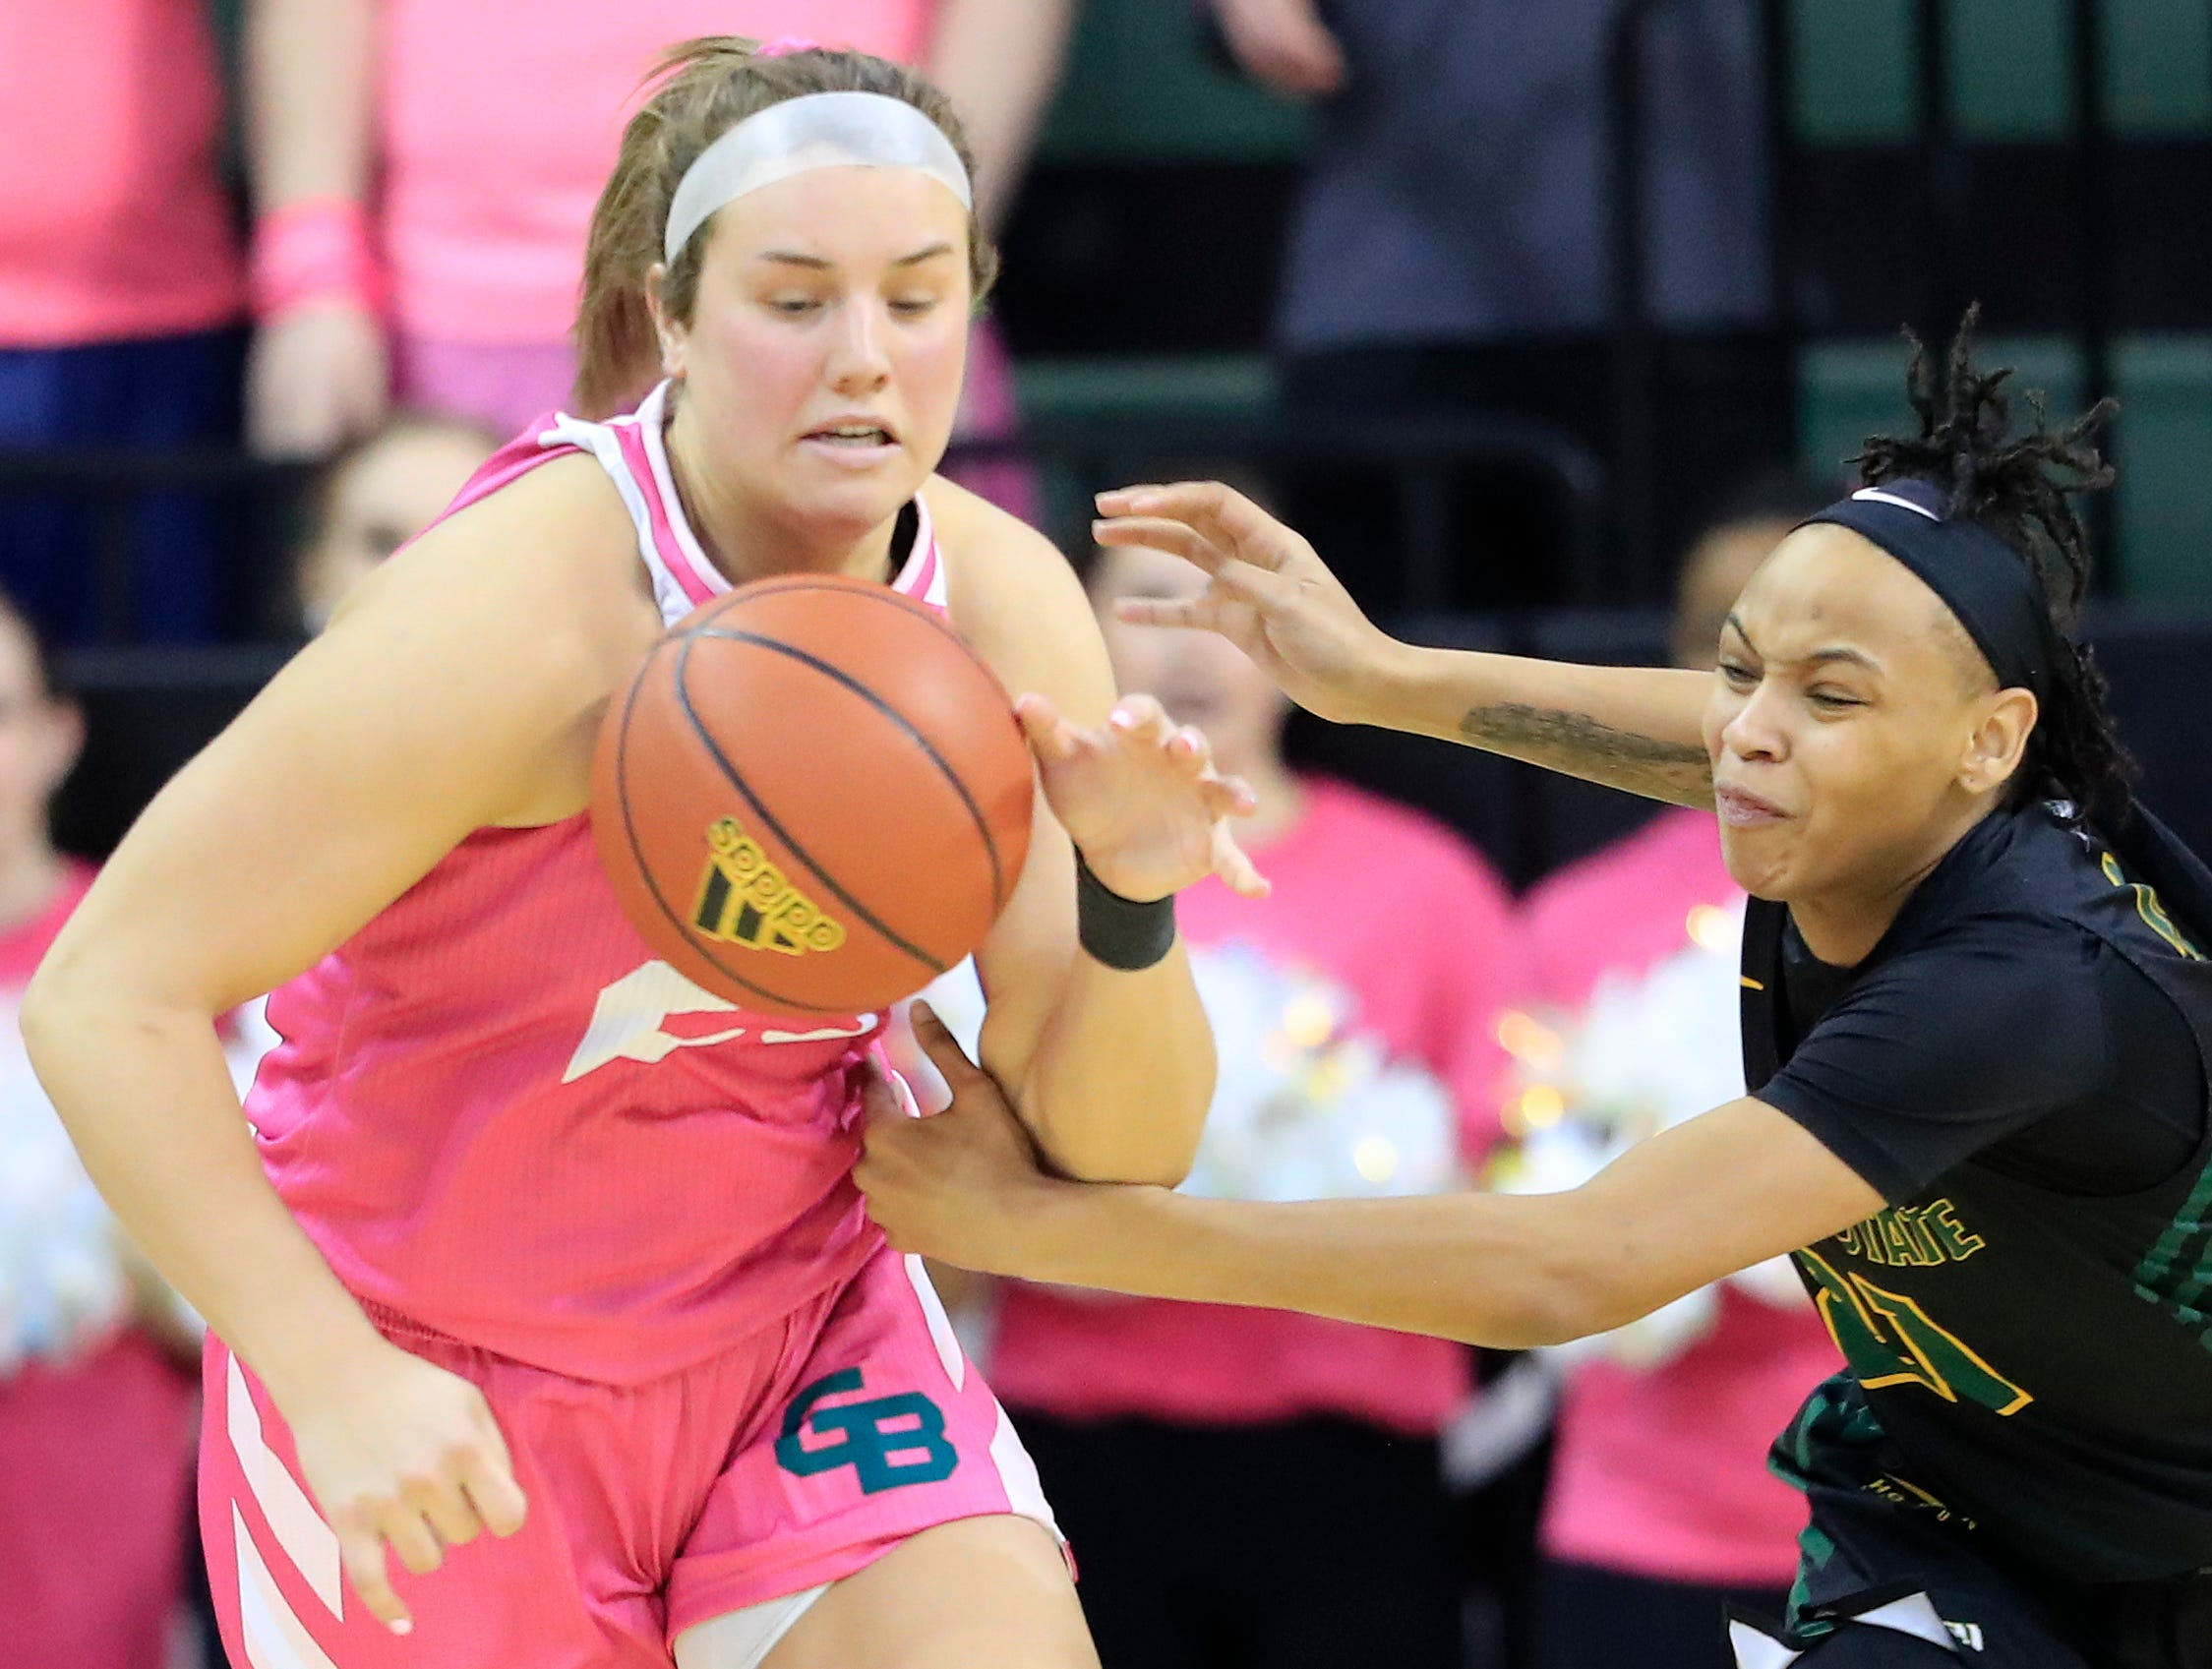 Green Bay Phoenix guard/forward Lyndsey Robson (25) comes away with a loose ball against Wright State Raiders forward Dasia Evans (21) in a Horizon League women's basketball game at the Kress Center on Saturday, February 9, 2019 in Green Bay, Wis.